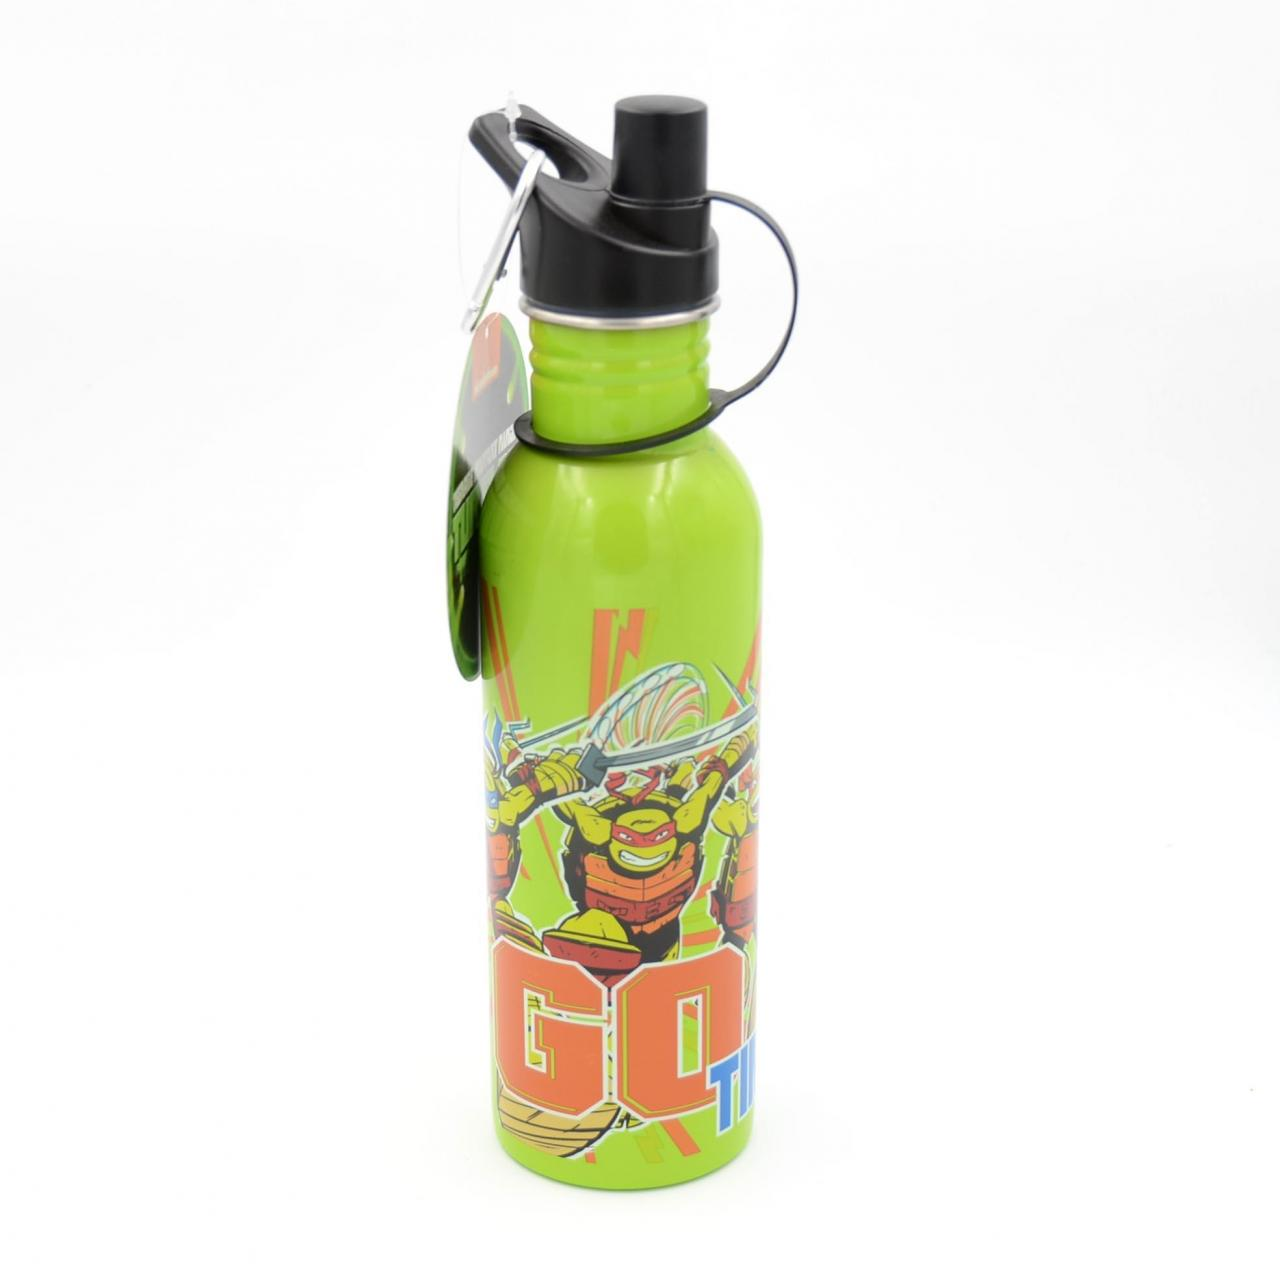 Buy cheap Stationery sets 911 750ml Stainless Steel Bottle product